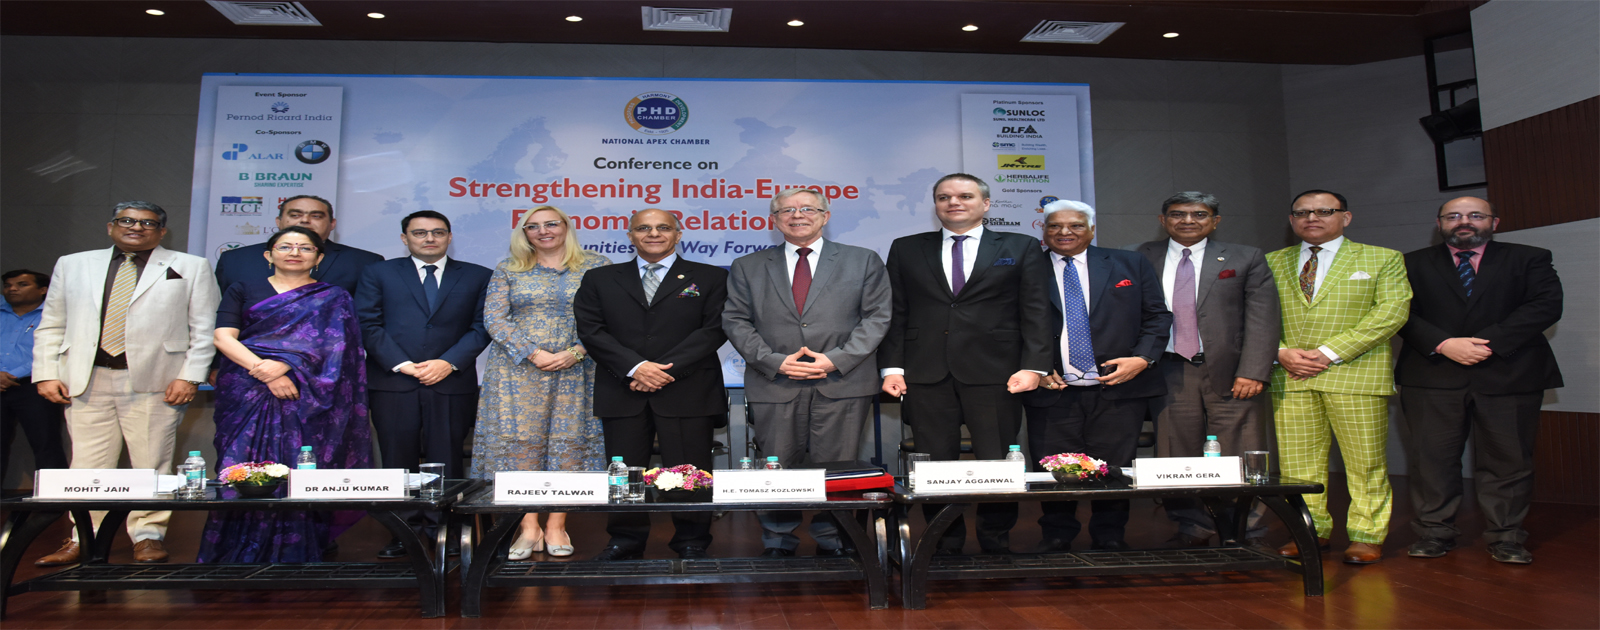 "Conference on ""Strengthening India-Europe Economic Relations – Opportunities and Way Forward"""